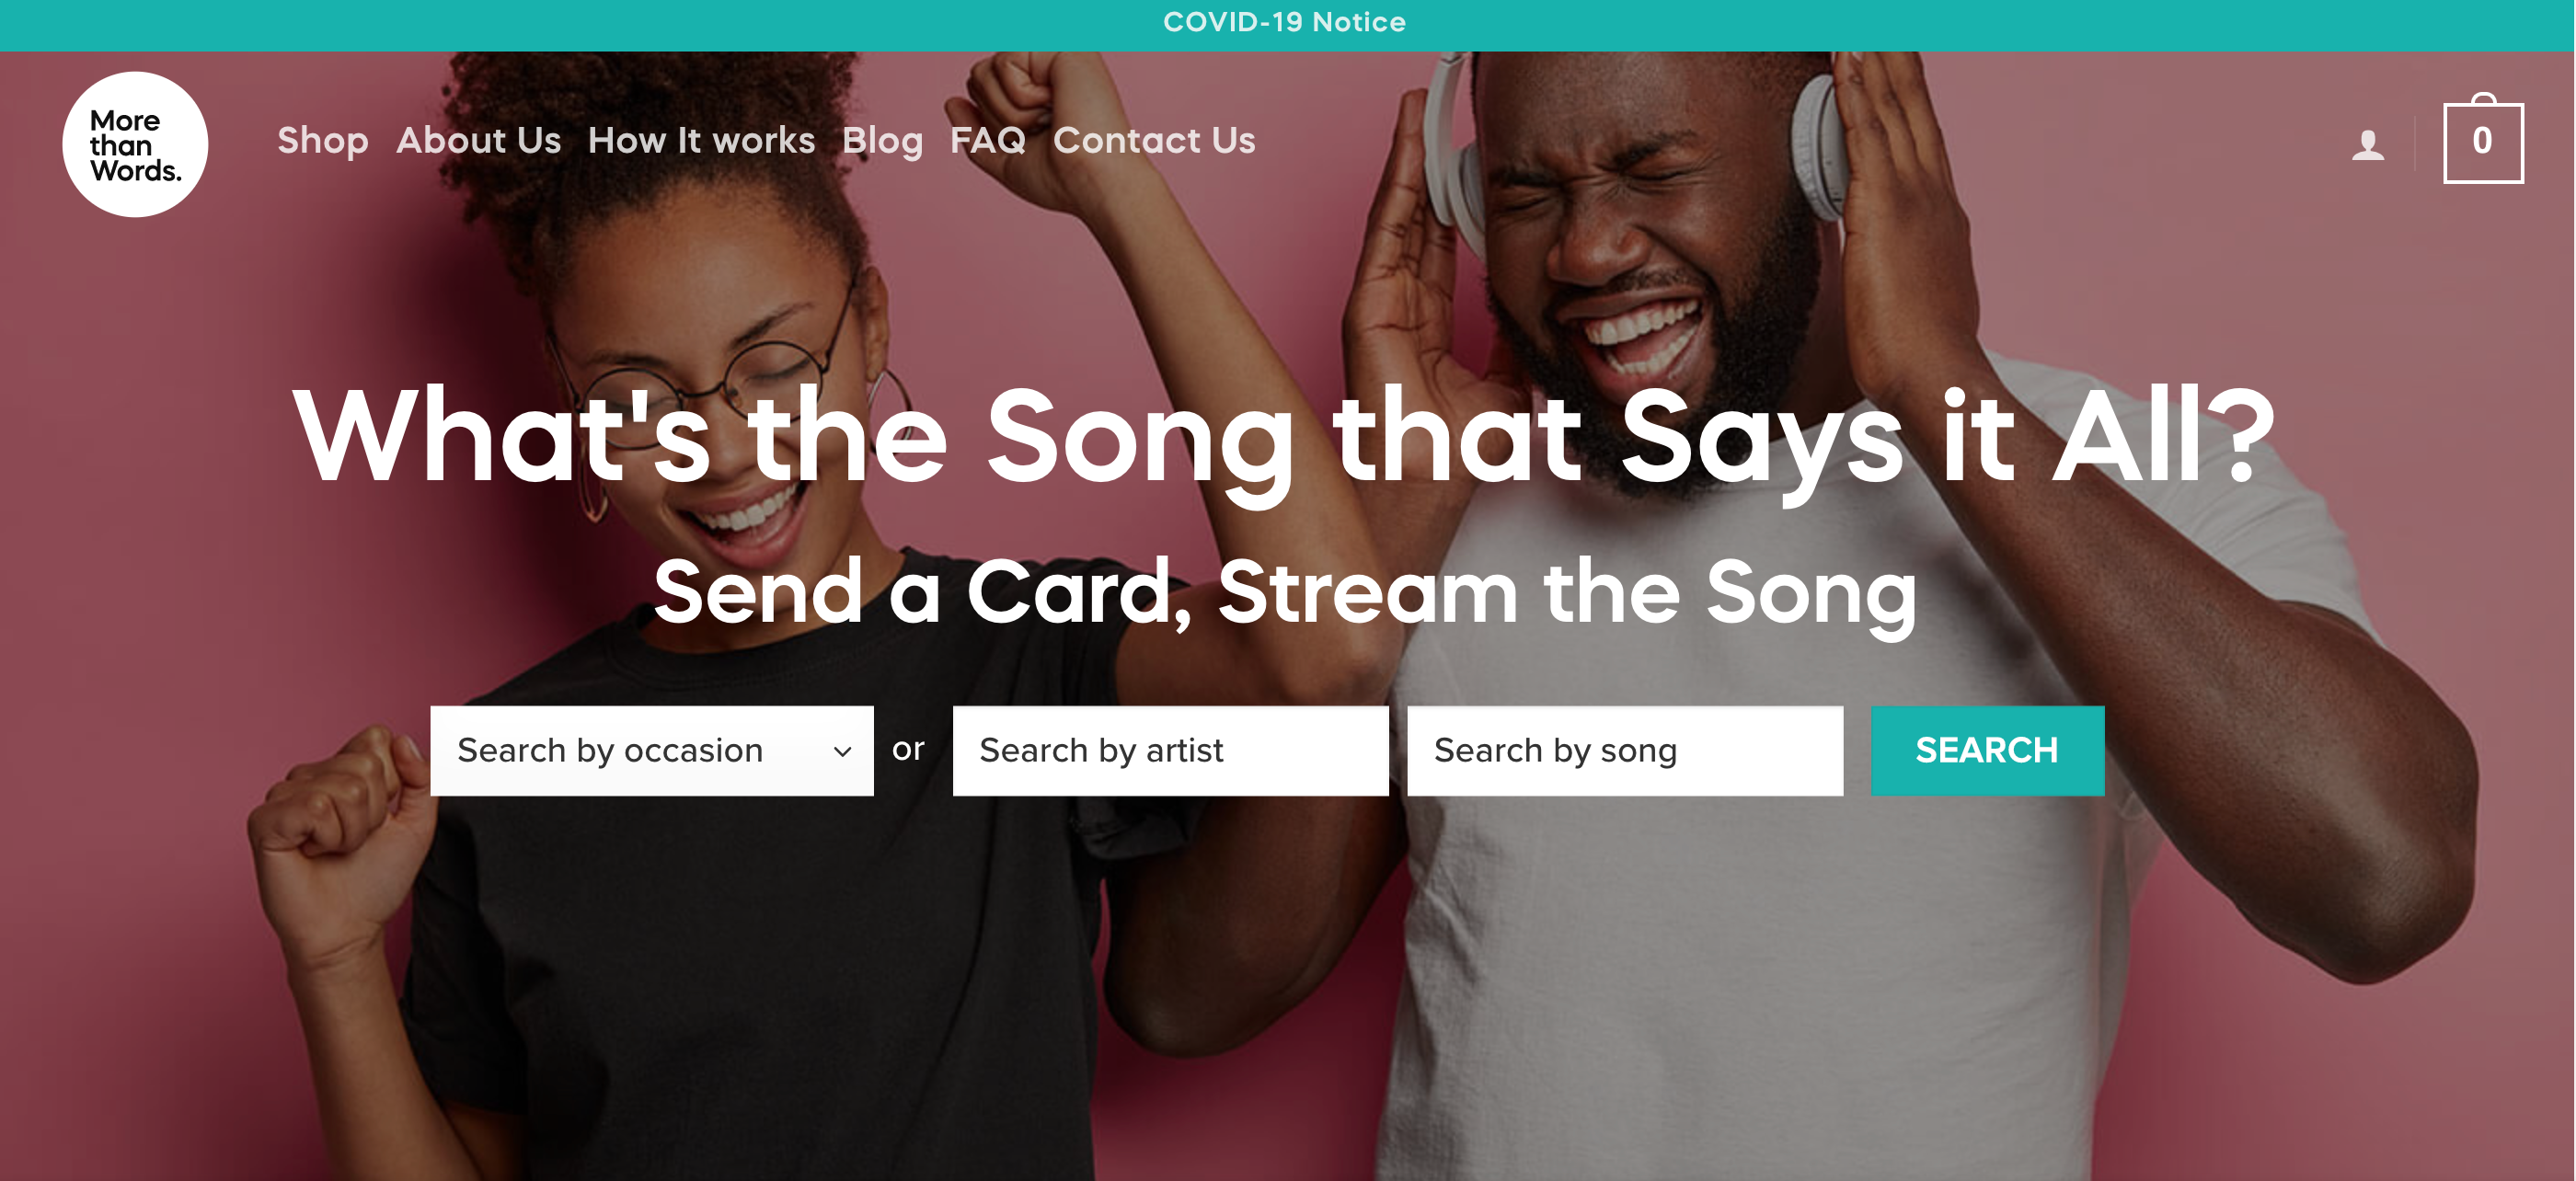 Above: Consumers can search by singer/band, genre or occasion to find the right card on the More than Words site.